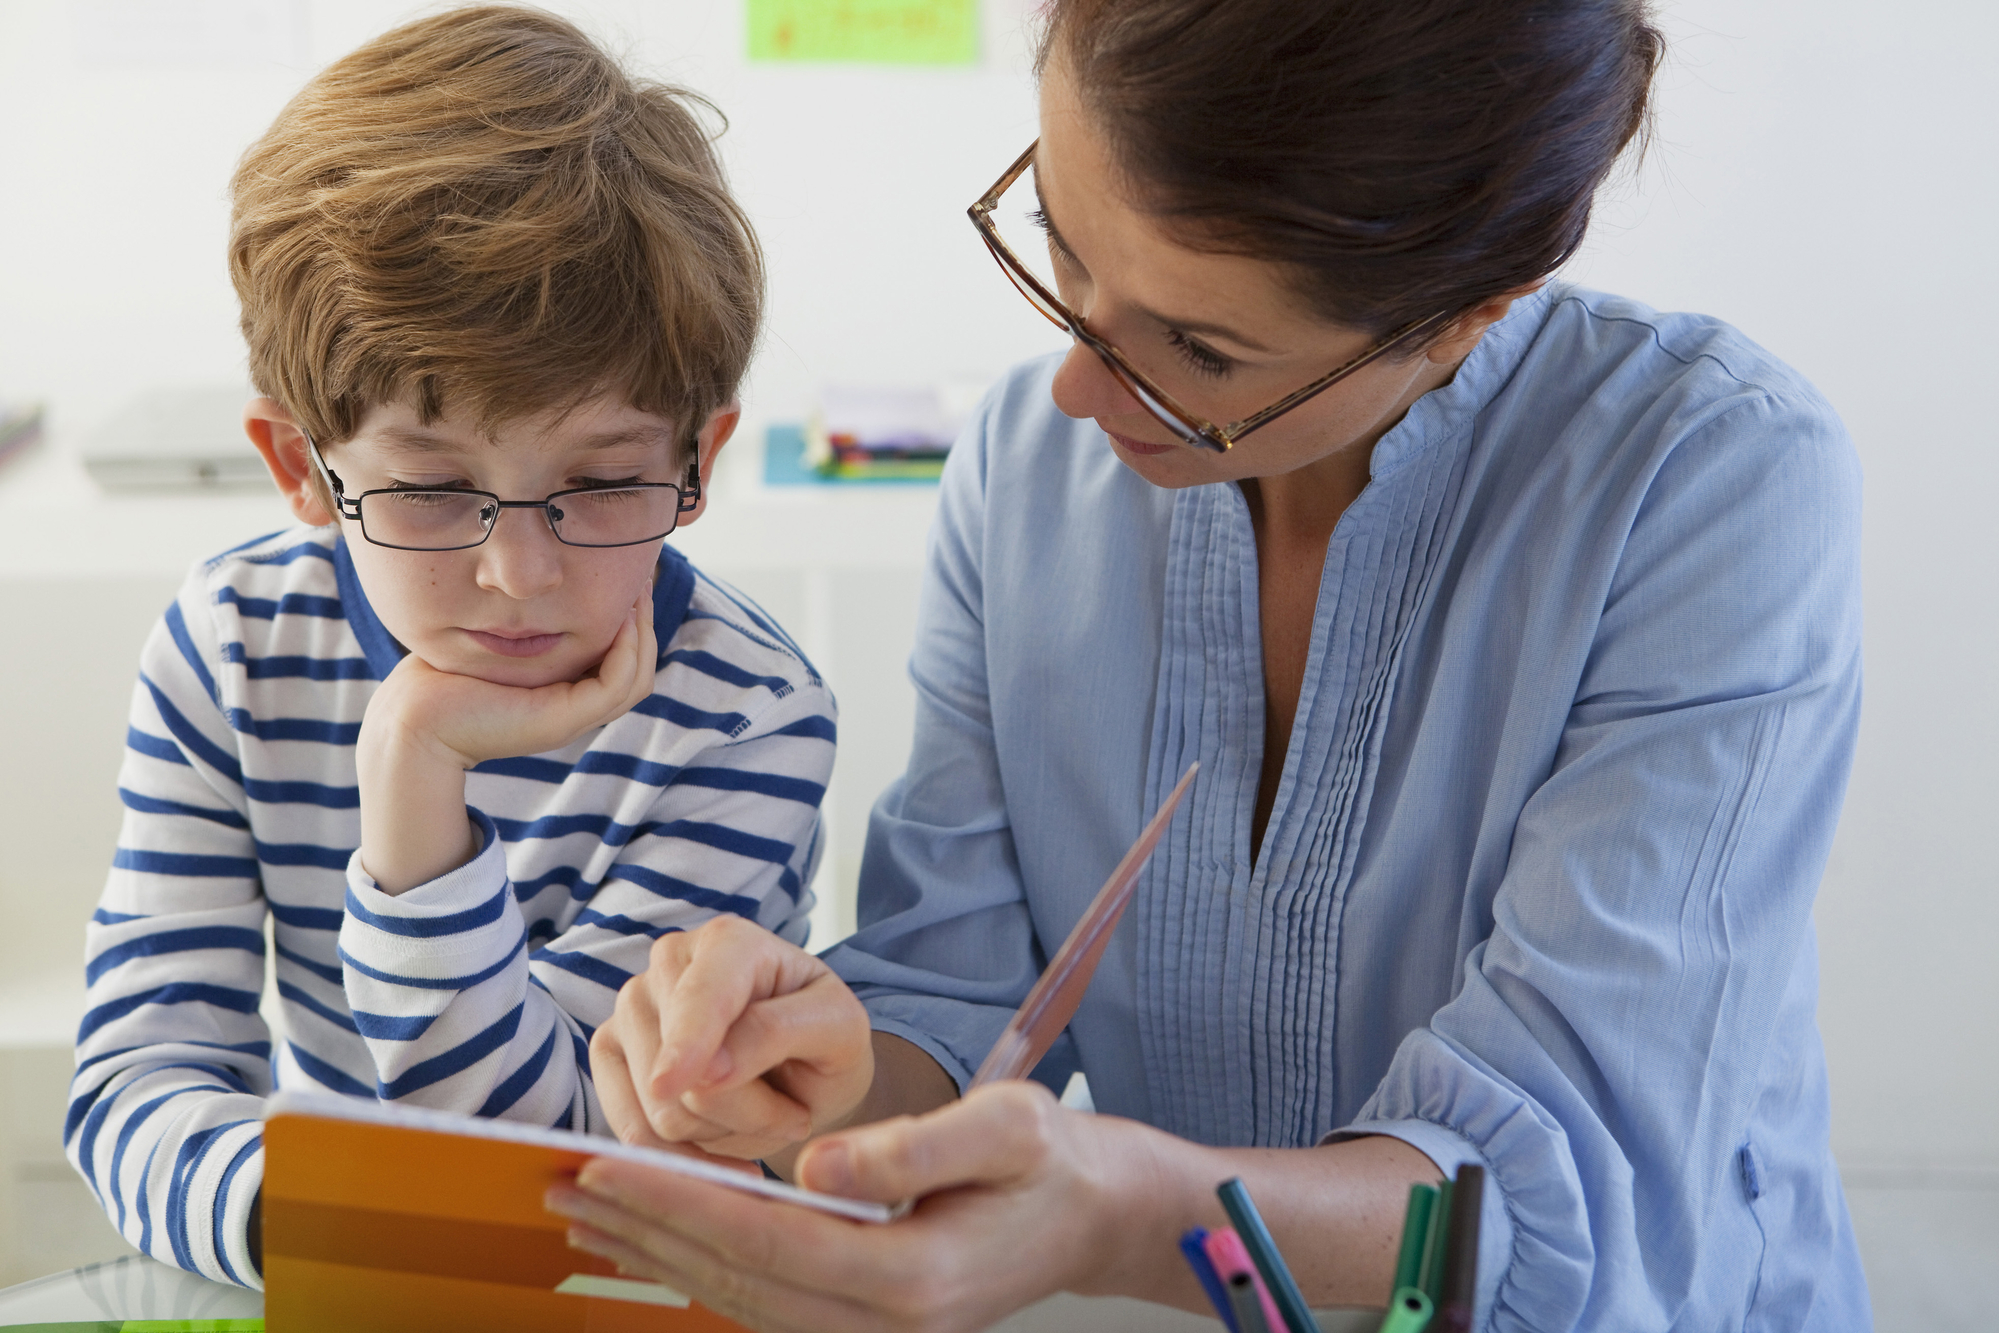 Vision Therapy for Dyslexia